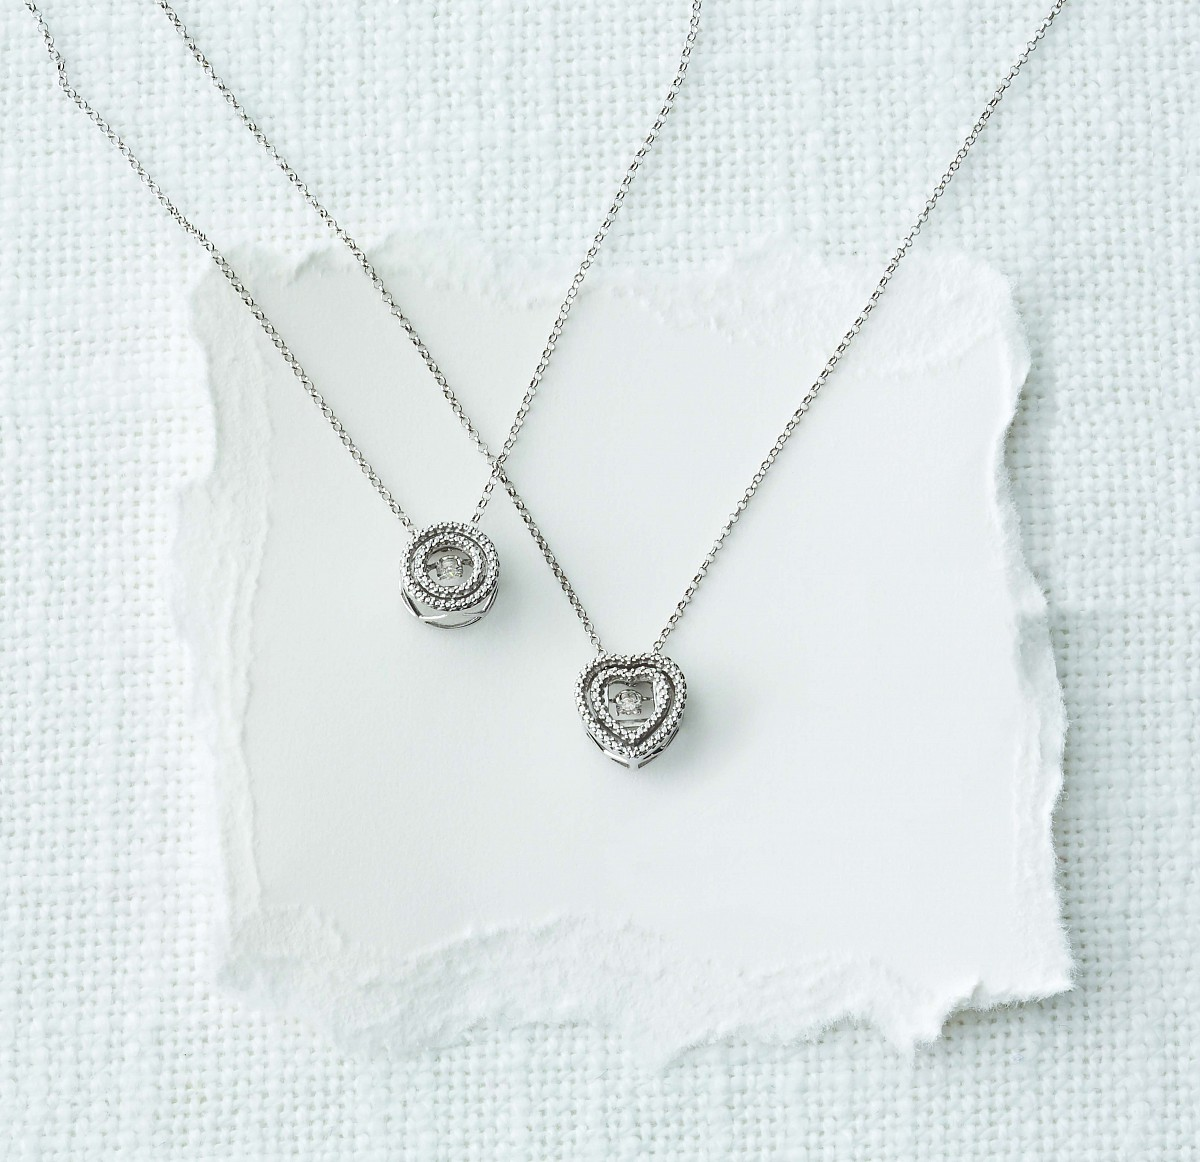 Things Remembered - bridesmaid and groomsmen gifts